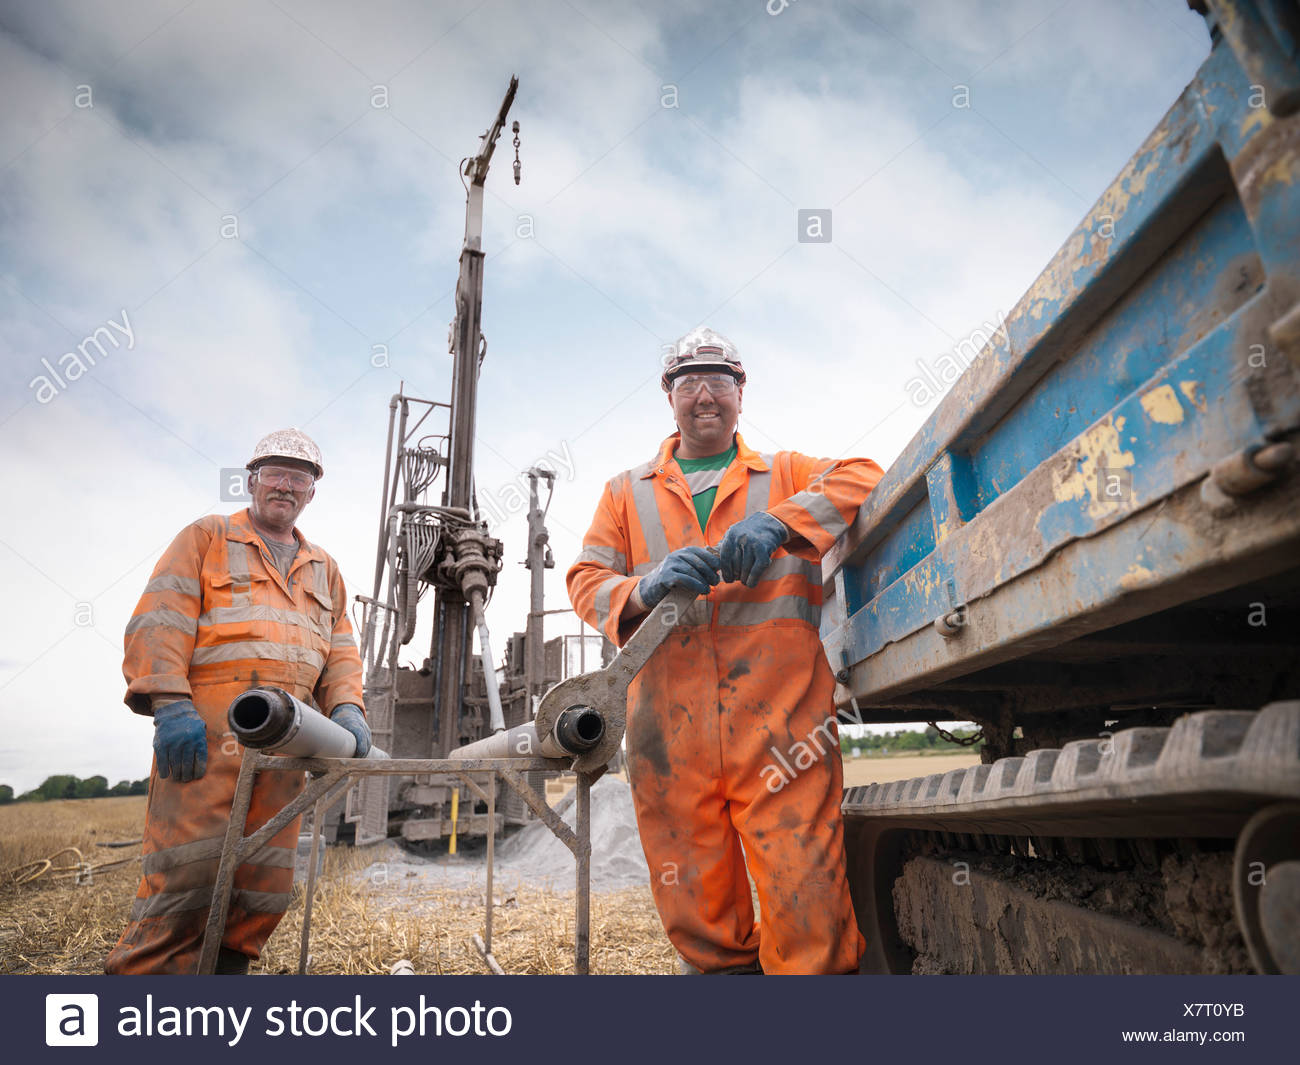 Portrait of drilling rig workers in hard hats and workwear - Stock Image